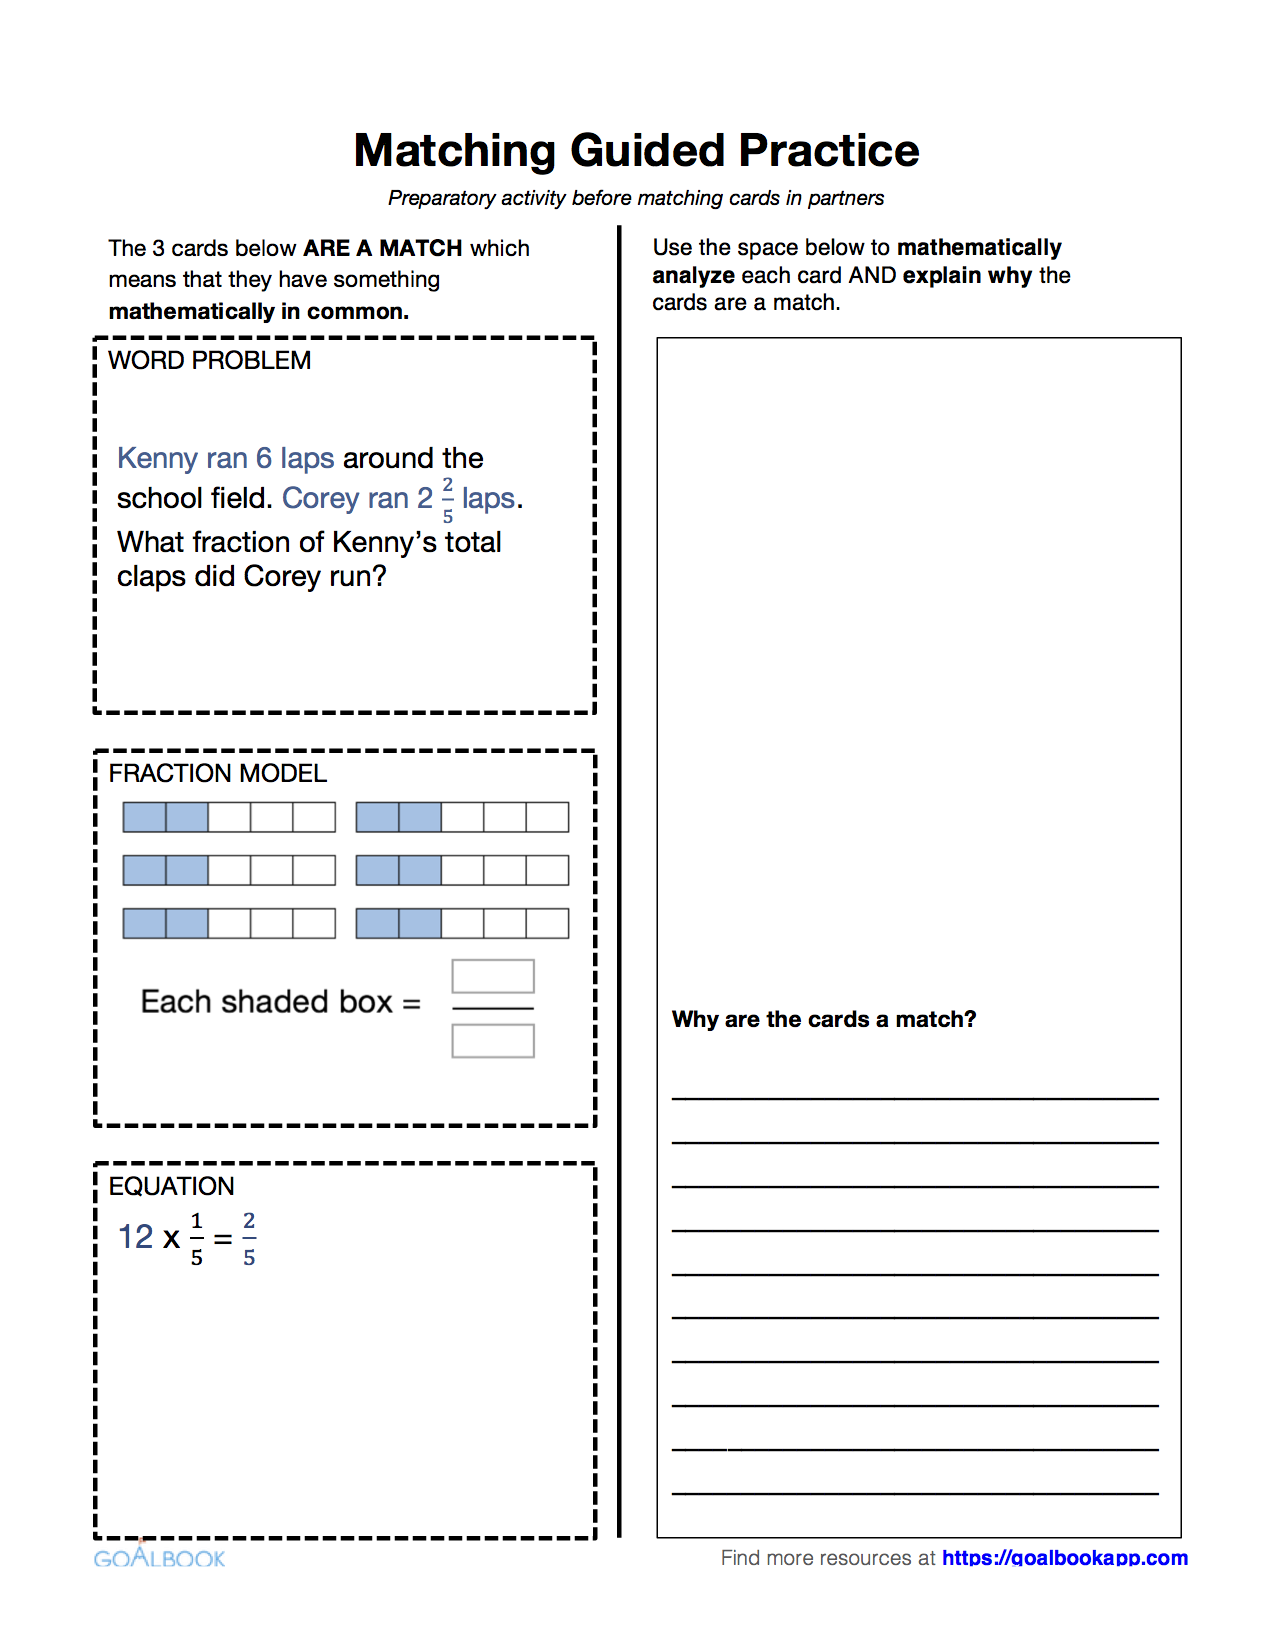 worksheet Multiplying Fractions By Whole Numbers Worksheets 4th Grade 4 nf multiply a fraction by whole number math exploring multiple representations multiplying fractions and numbers